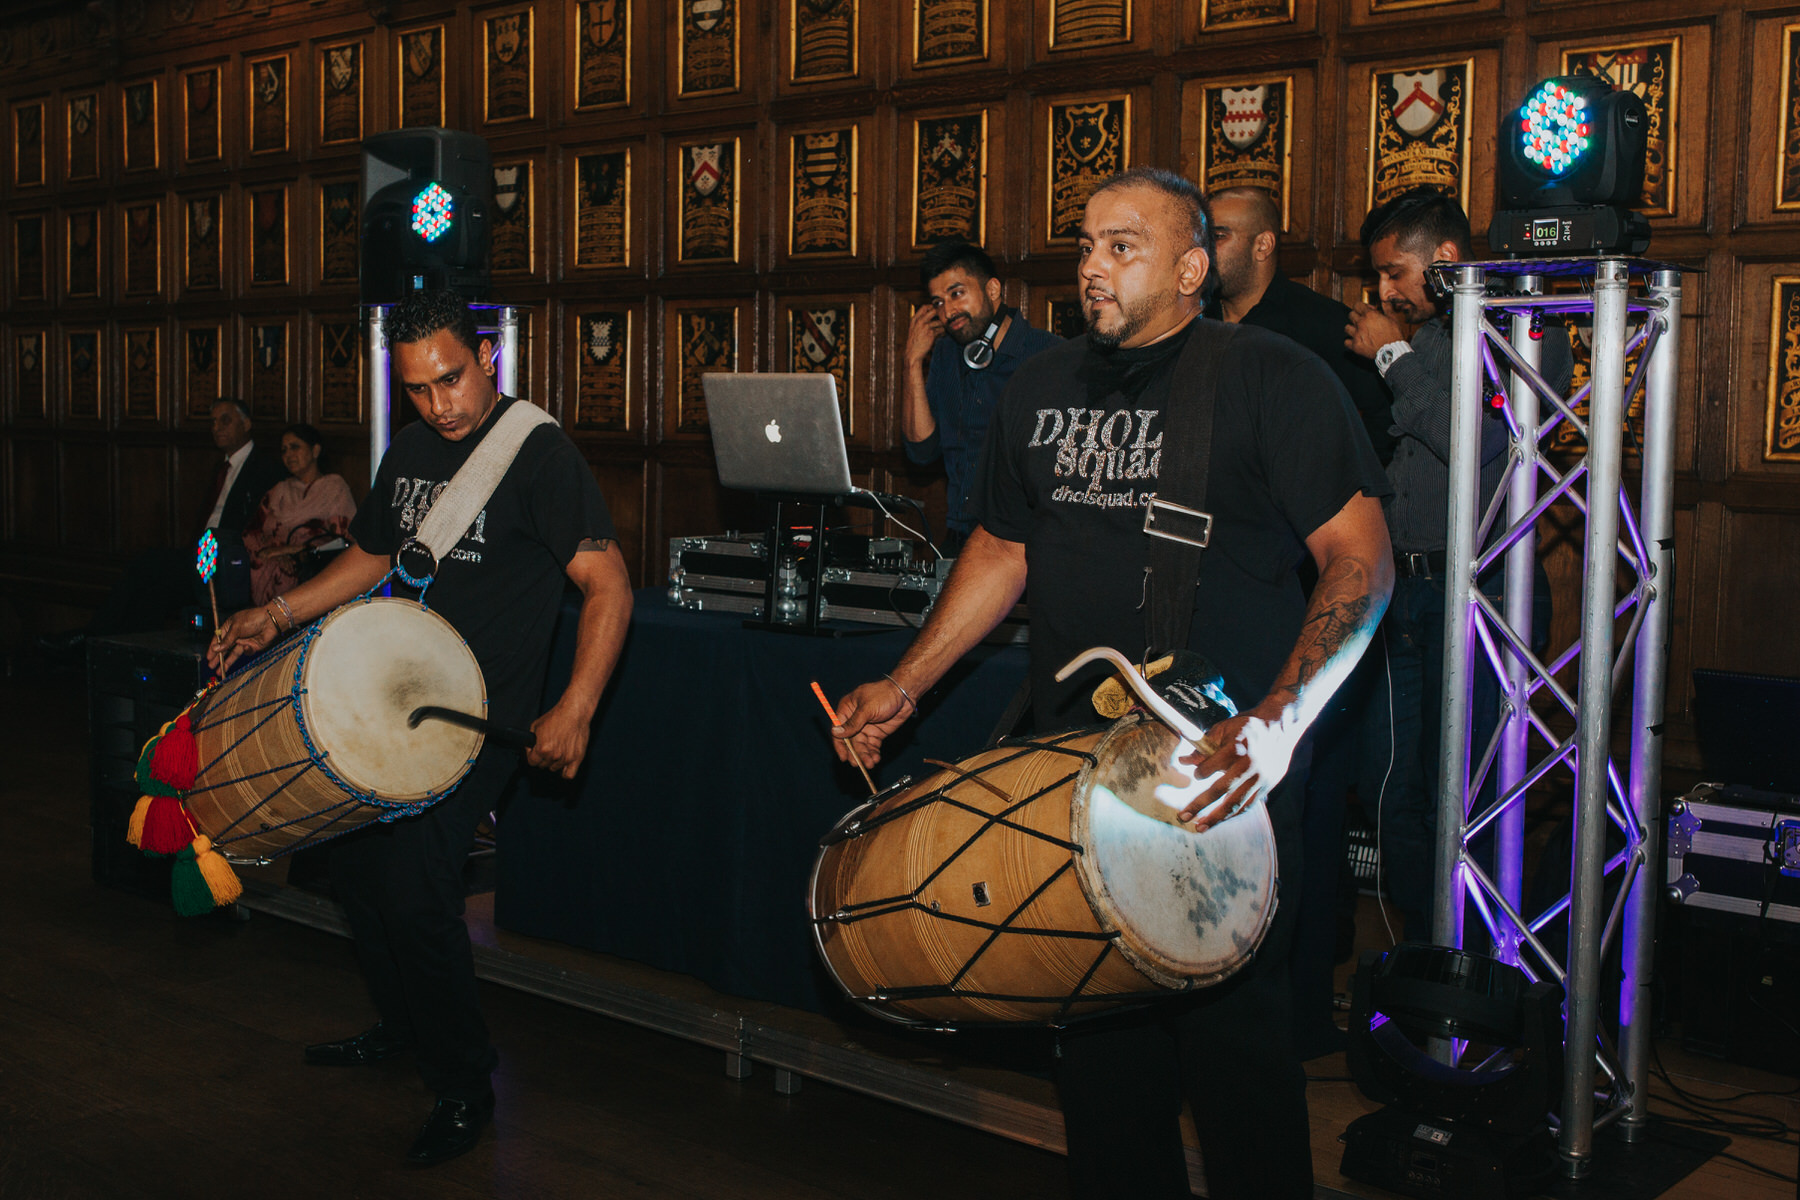 239-Anglo-Asian-London-Wedding-Dhol-Squad-event-drummers.jpg